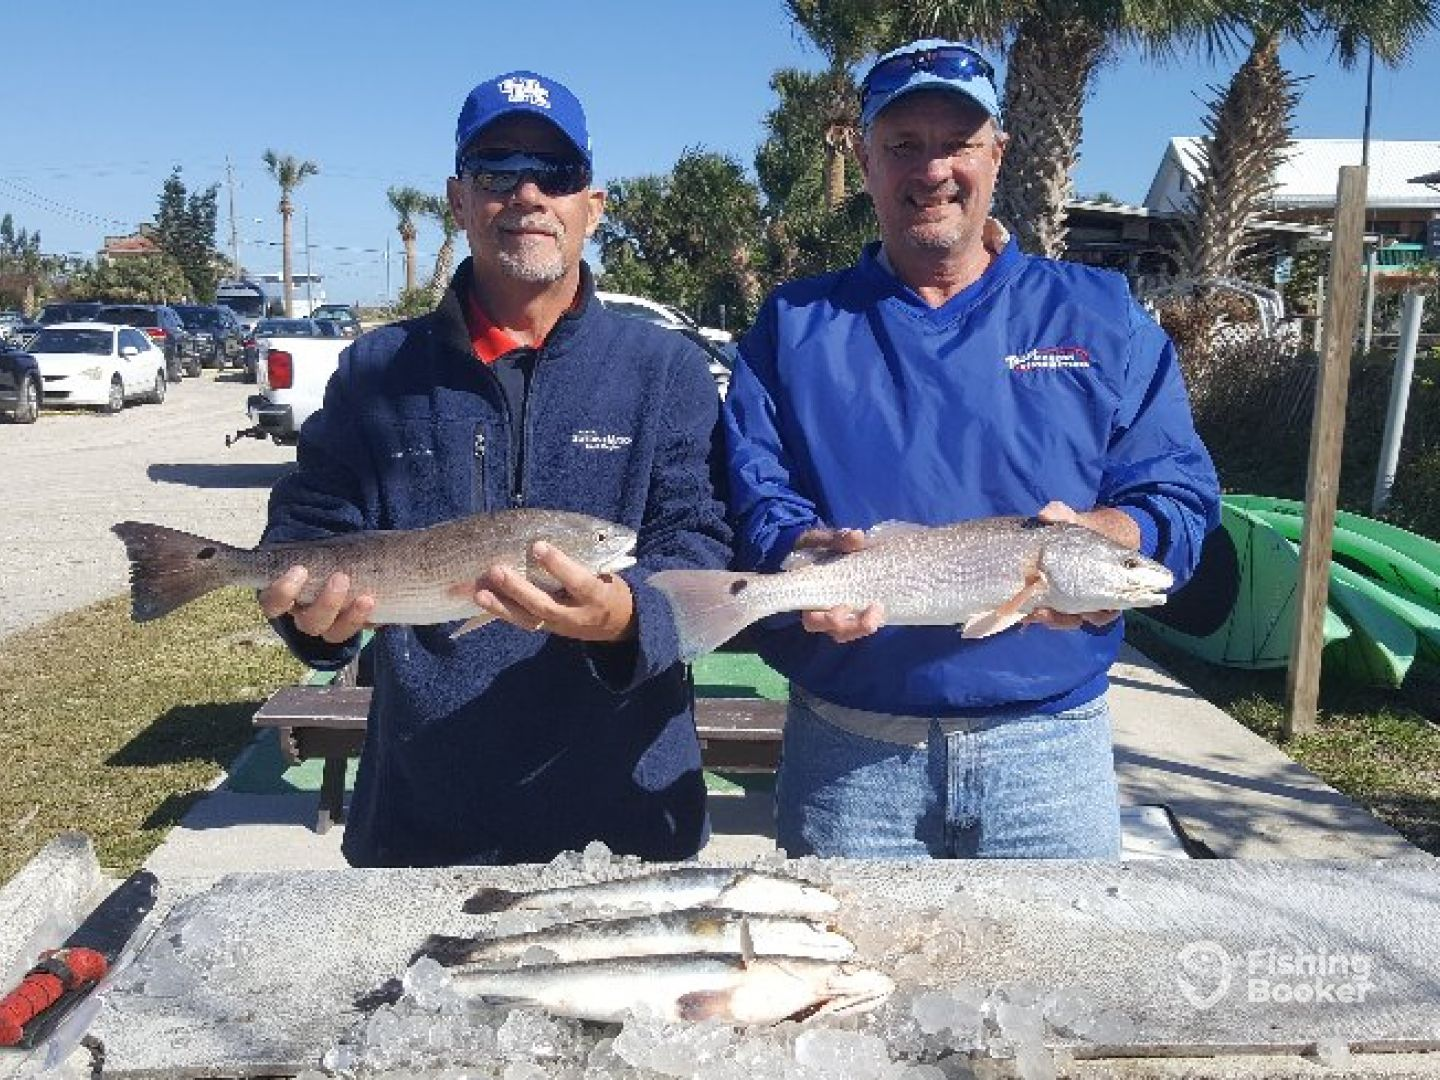 Code red fishing charters new smyrna beach fl for New smyrna fishing charters